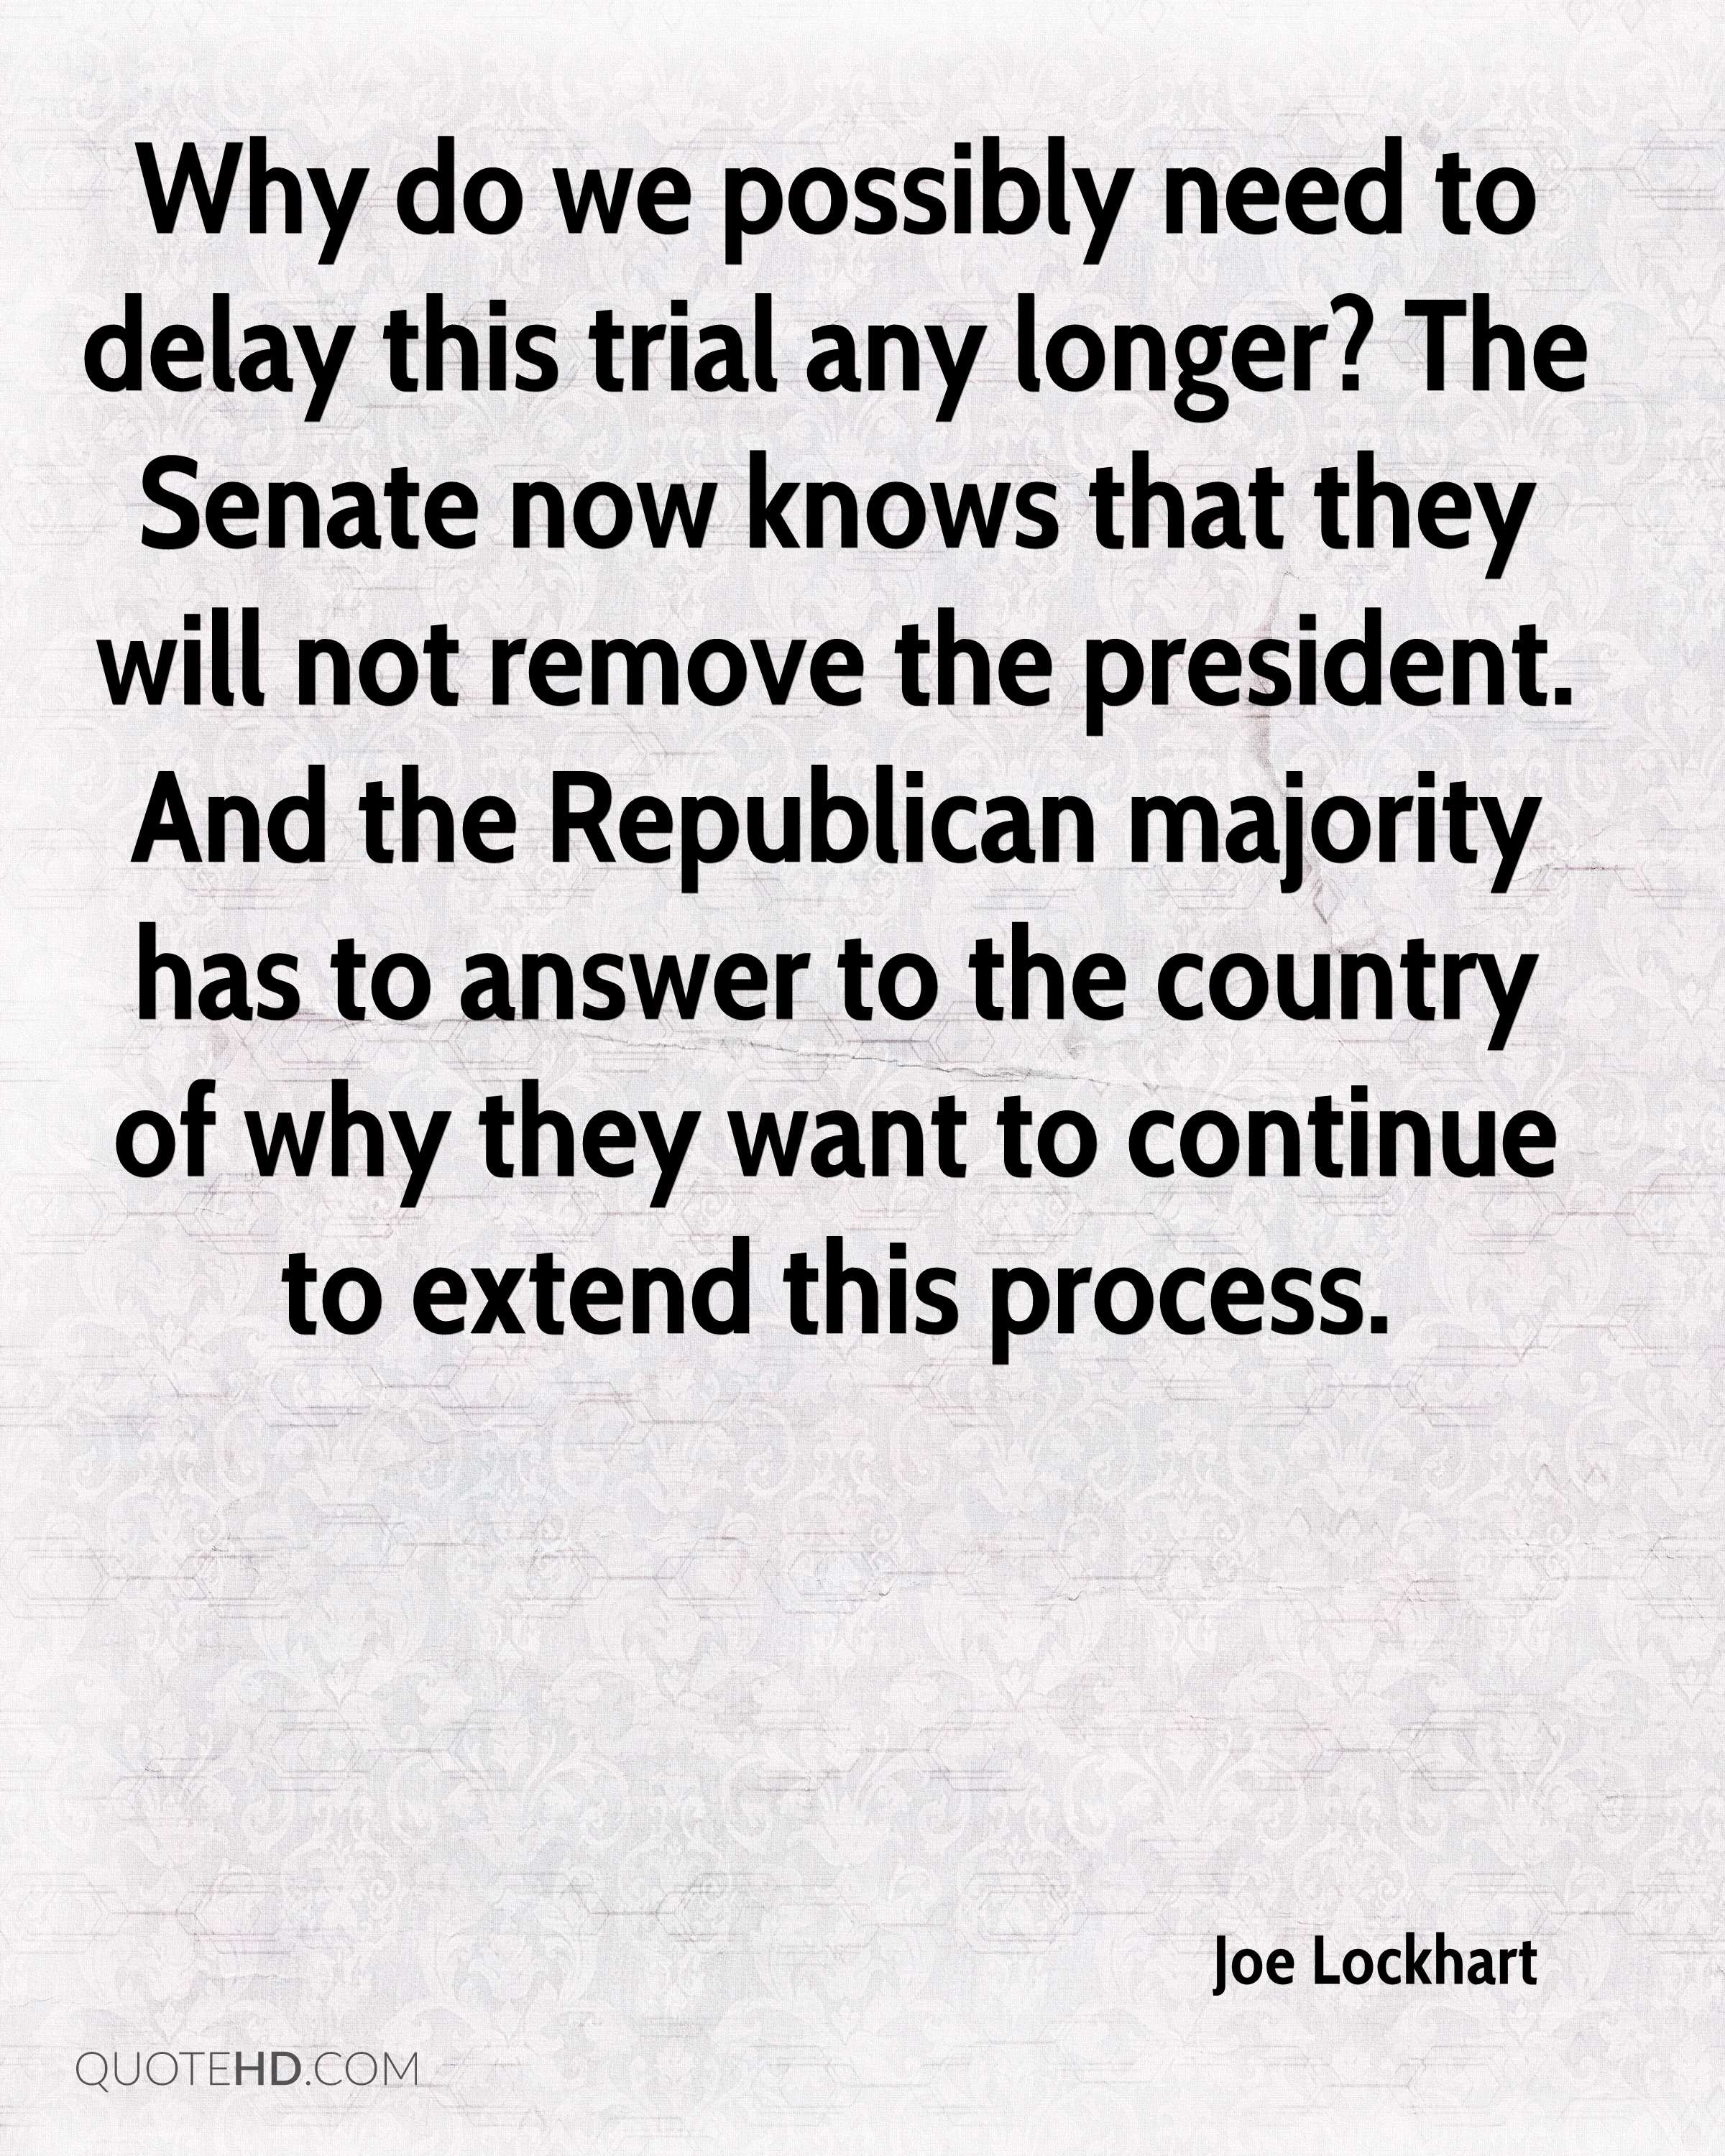 Why do we possibly need to delay this trial any longer? The Senate now knows that they will not remove the president. And the Republican majority has to answer to the country of why they want to continue to extend this process.